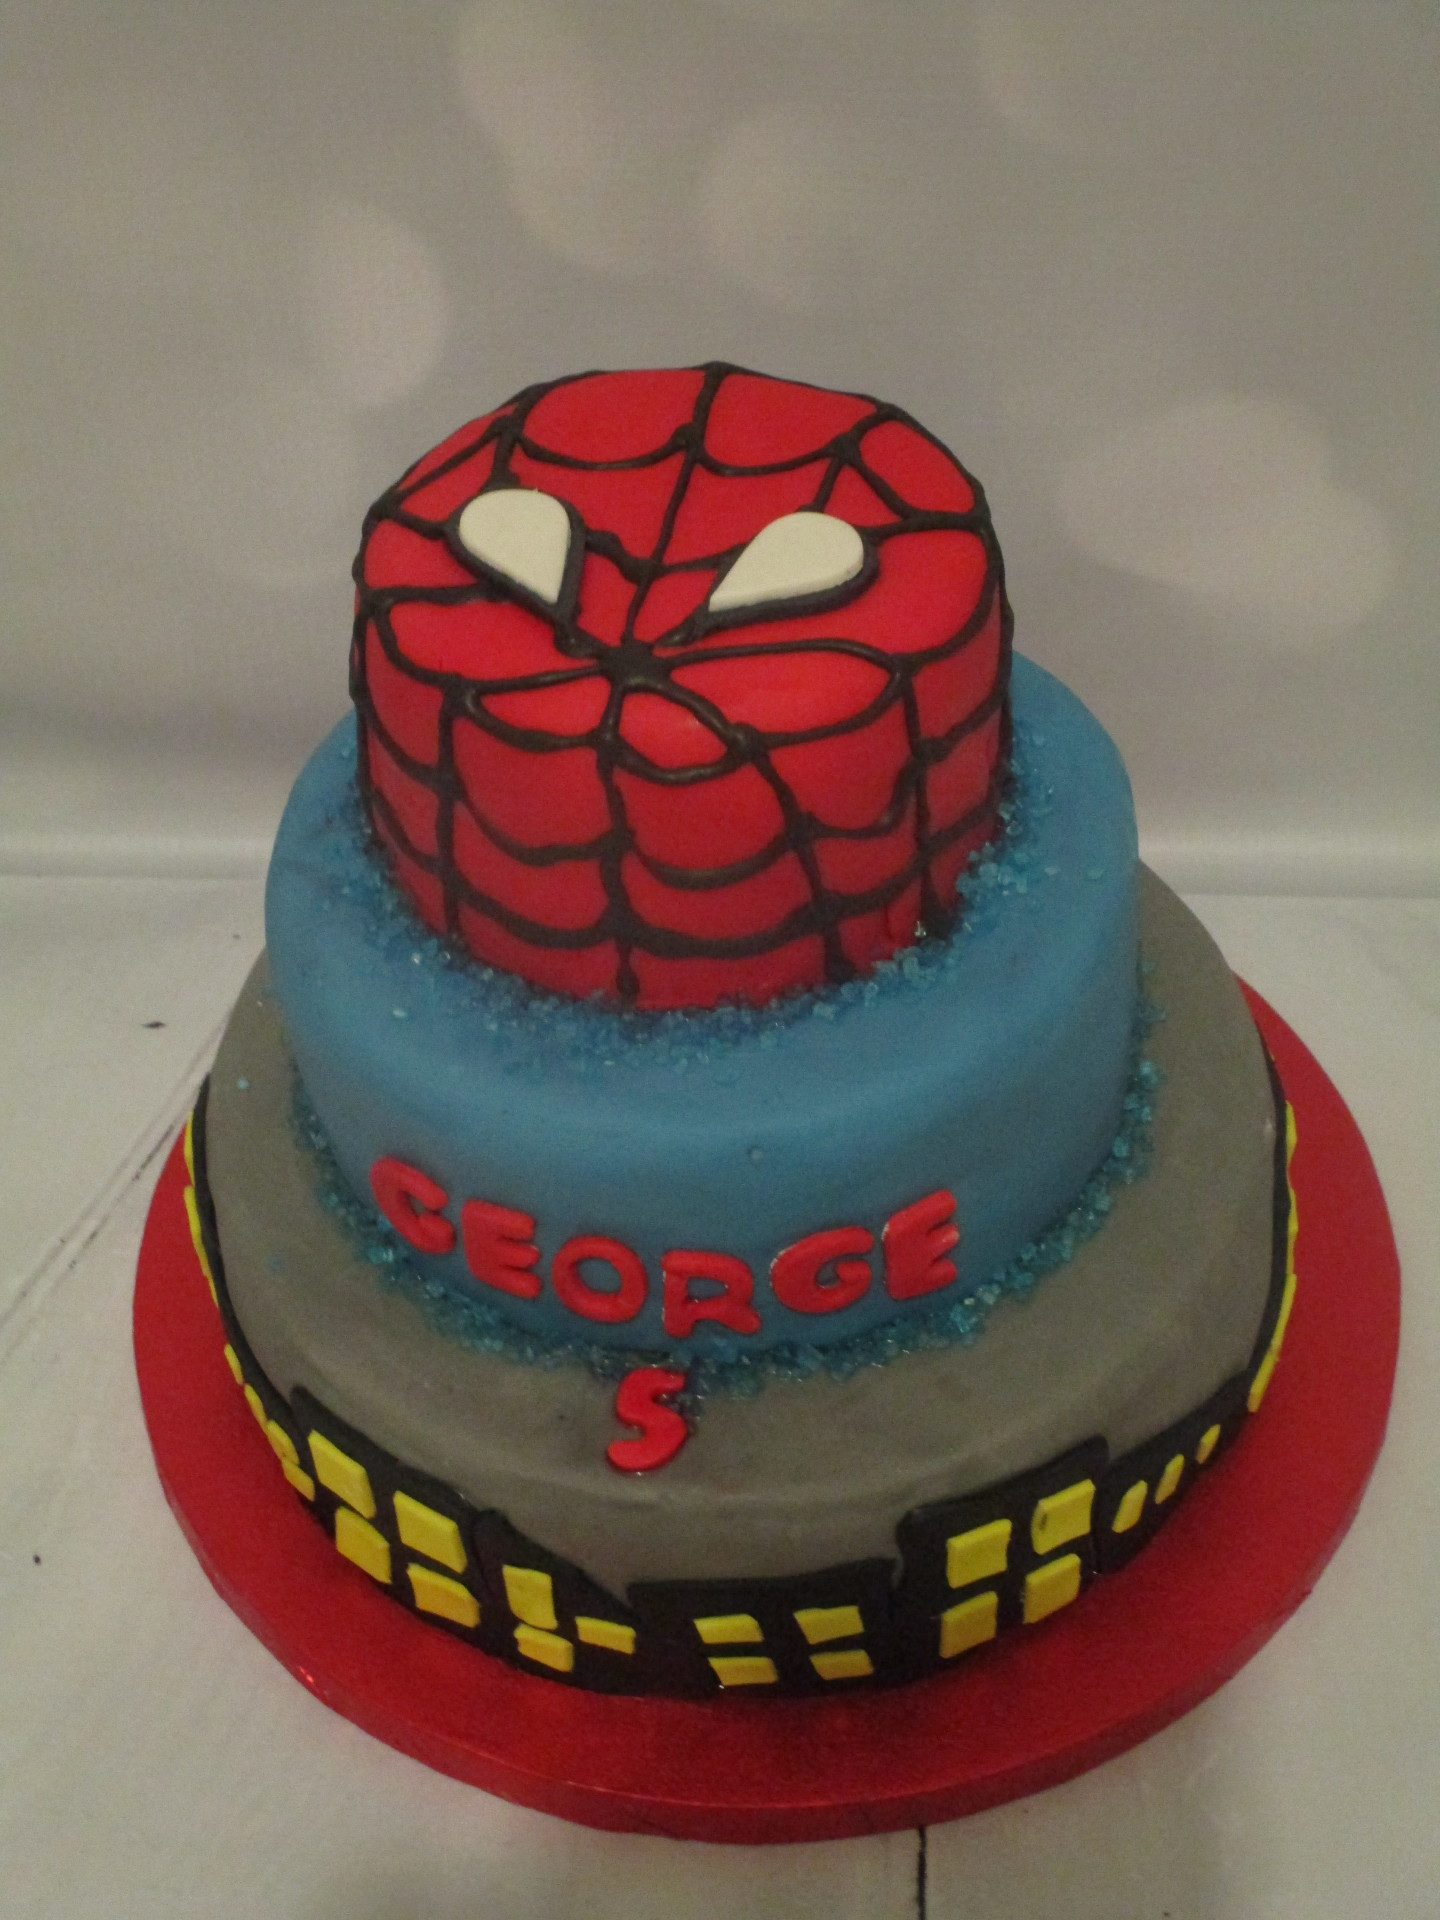 3 Tiered Spiderman Cake for a Large Class Party